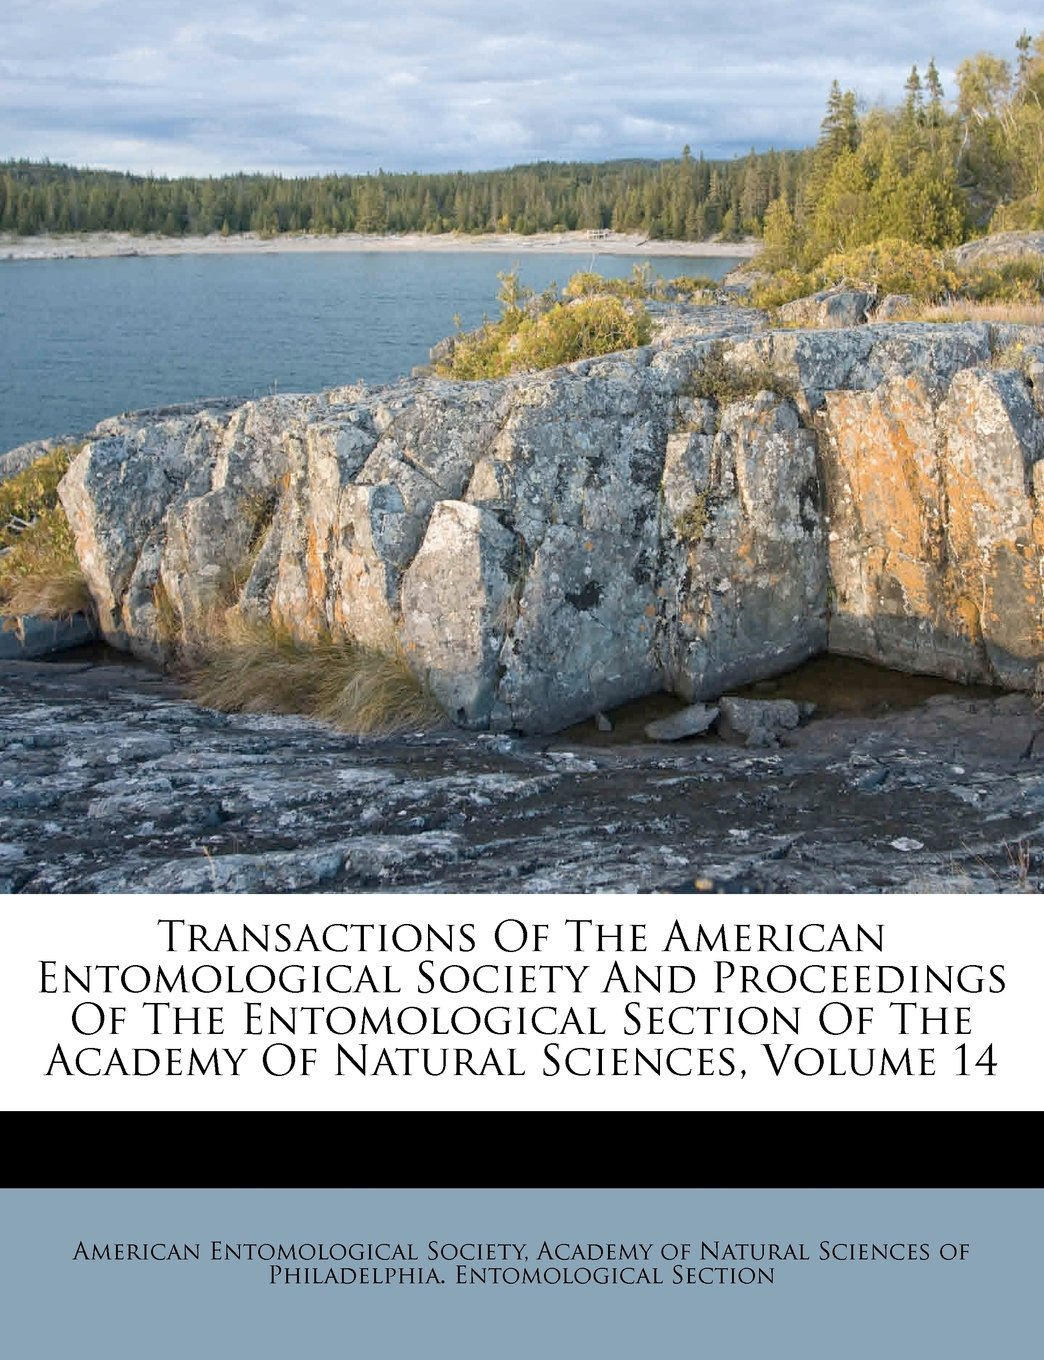 Transactions Of The American Entomological Society And Proceedings Of The Entomological Section Of The Academy Of Natural Sciences, Volume 14 pdf